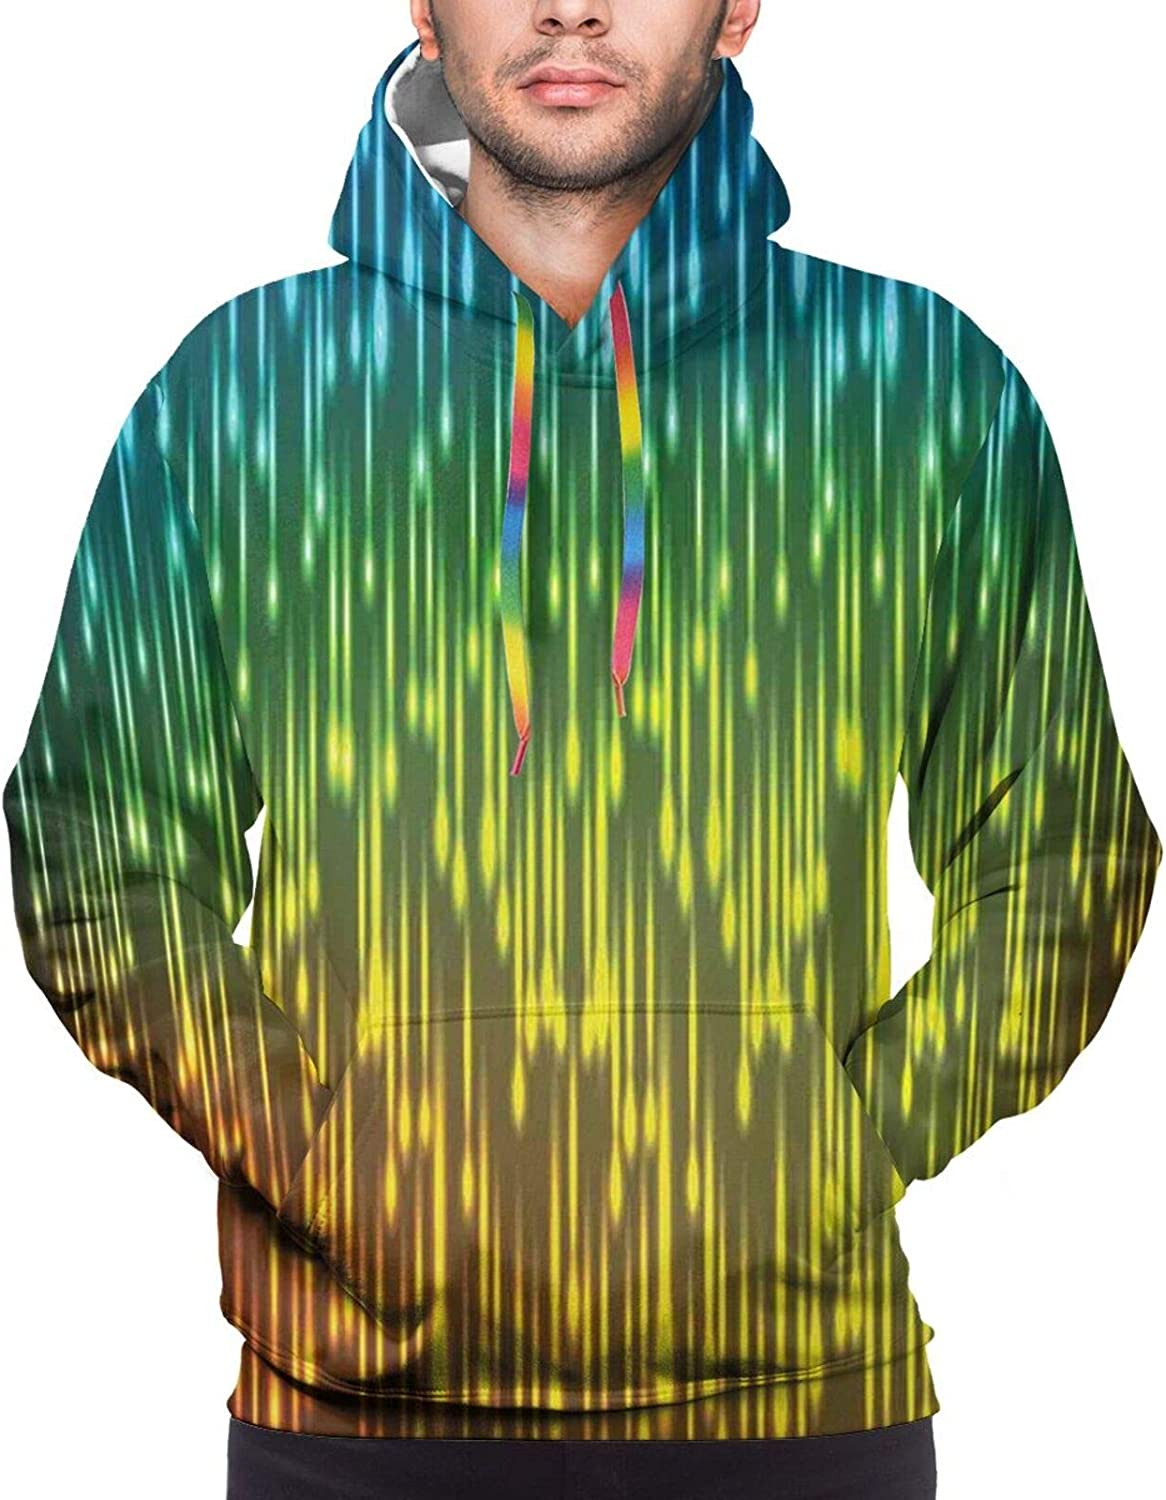 Men's Hoodies Sweatshirts,Galaxy Stars in Space Celestial Astronomic Planets in The Universe Milky Way Print